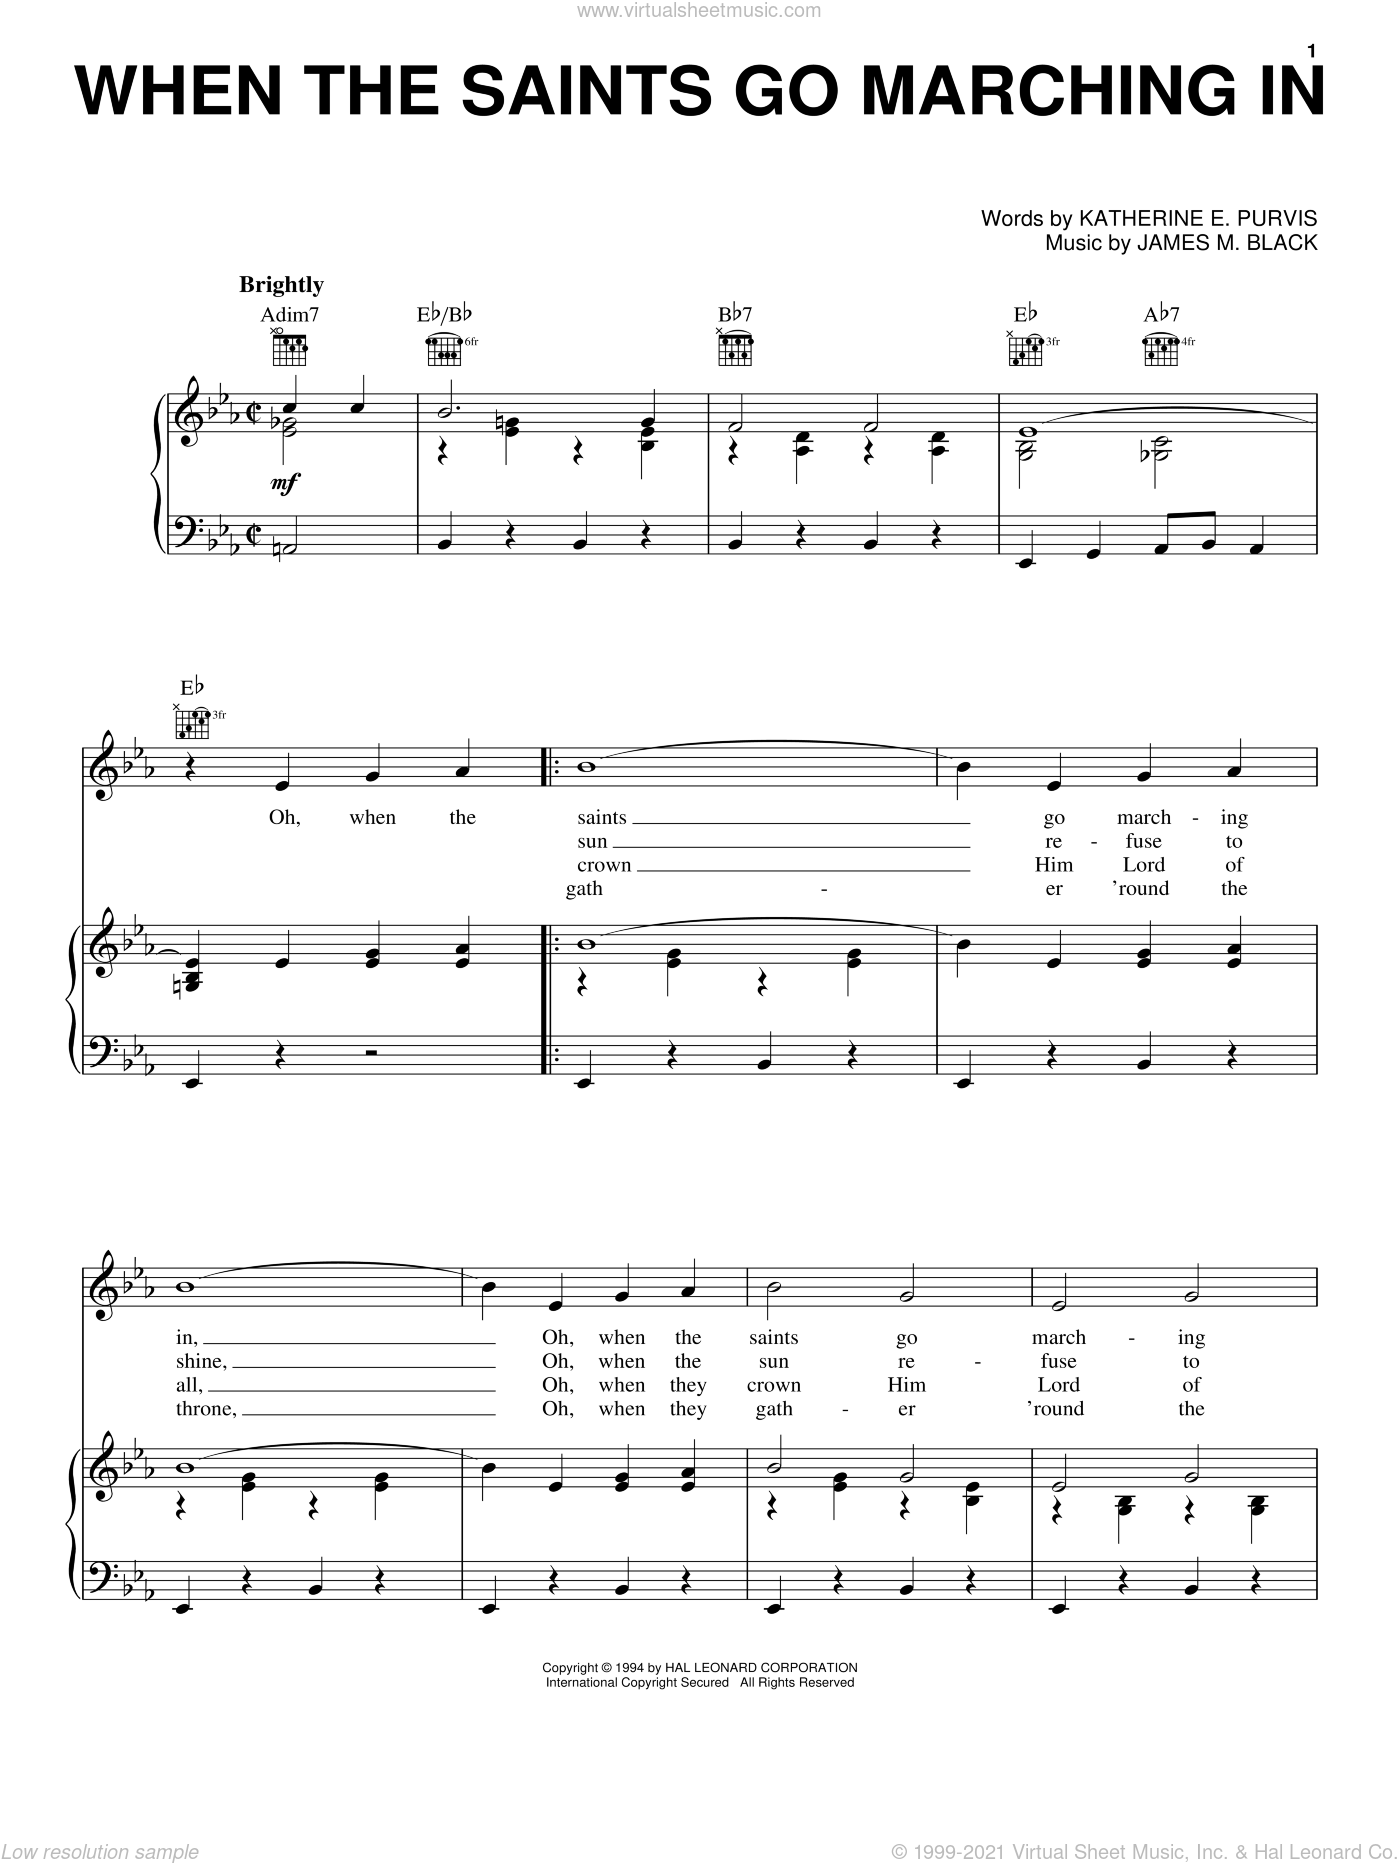 When The Saints Go Marching In sheet music for voice, piano or guitar by Louis Armstrong, James M. Black and Katherine E. Purvis, intermediate skill level